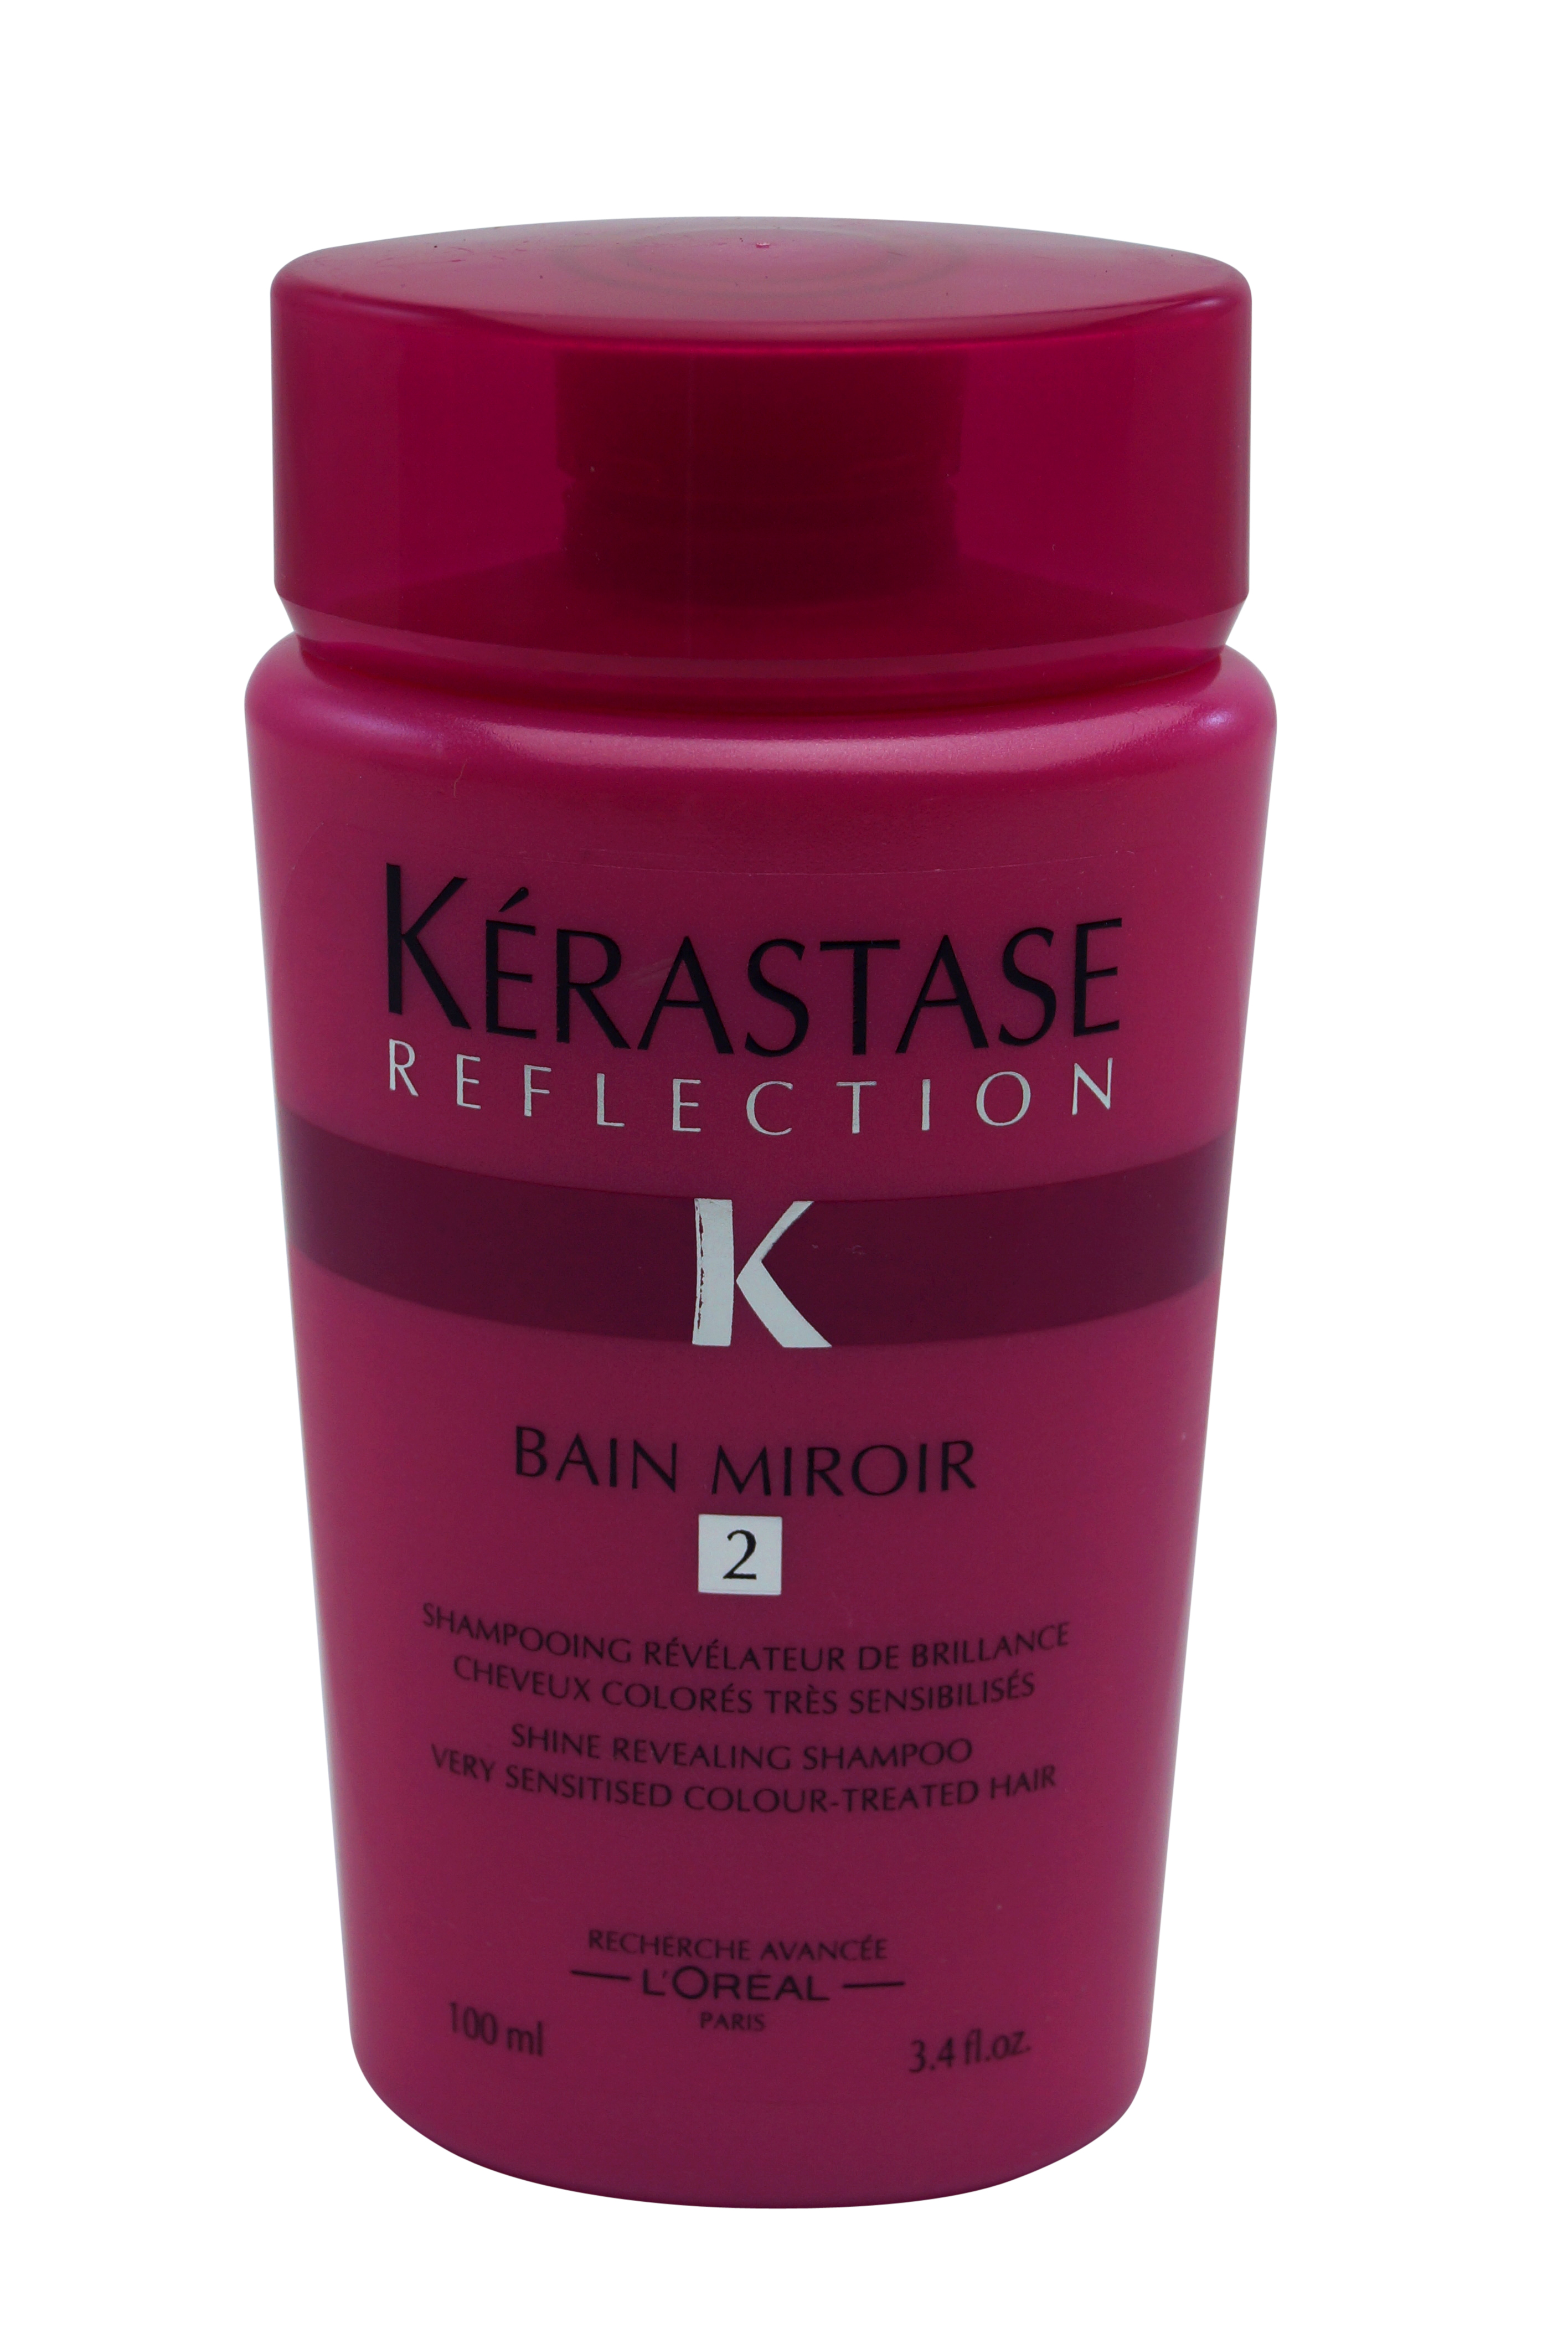 Kerastase bain miroir 2 shampoo 3 4 oz travel size bottle for Kerastase bain miroir